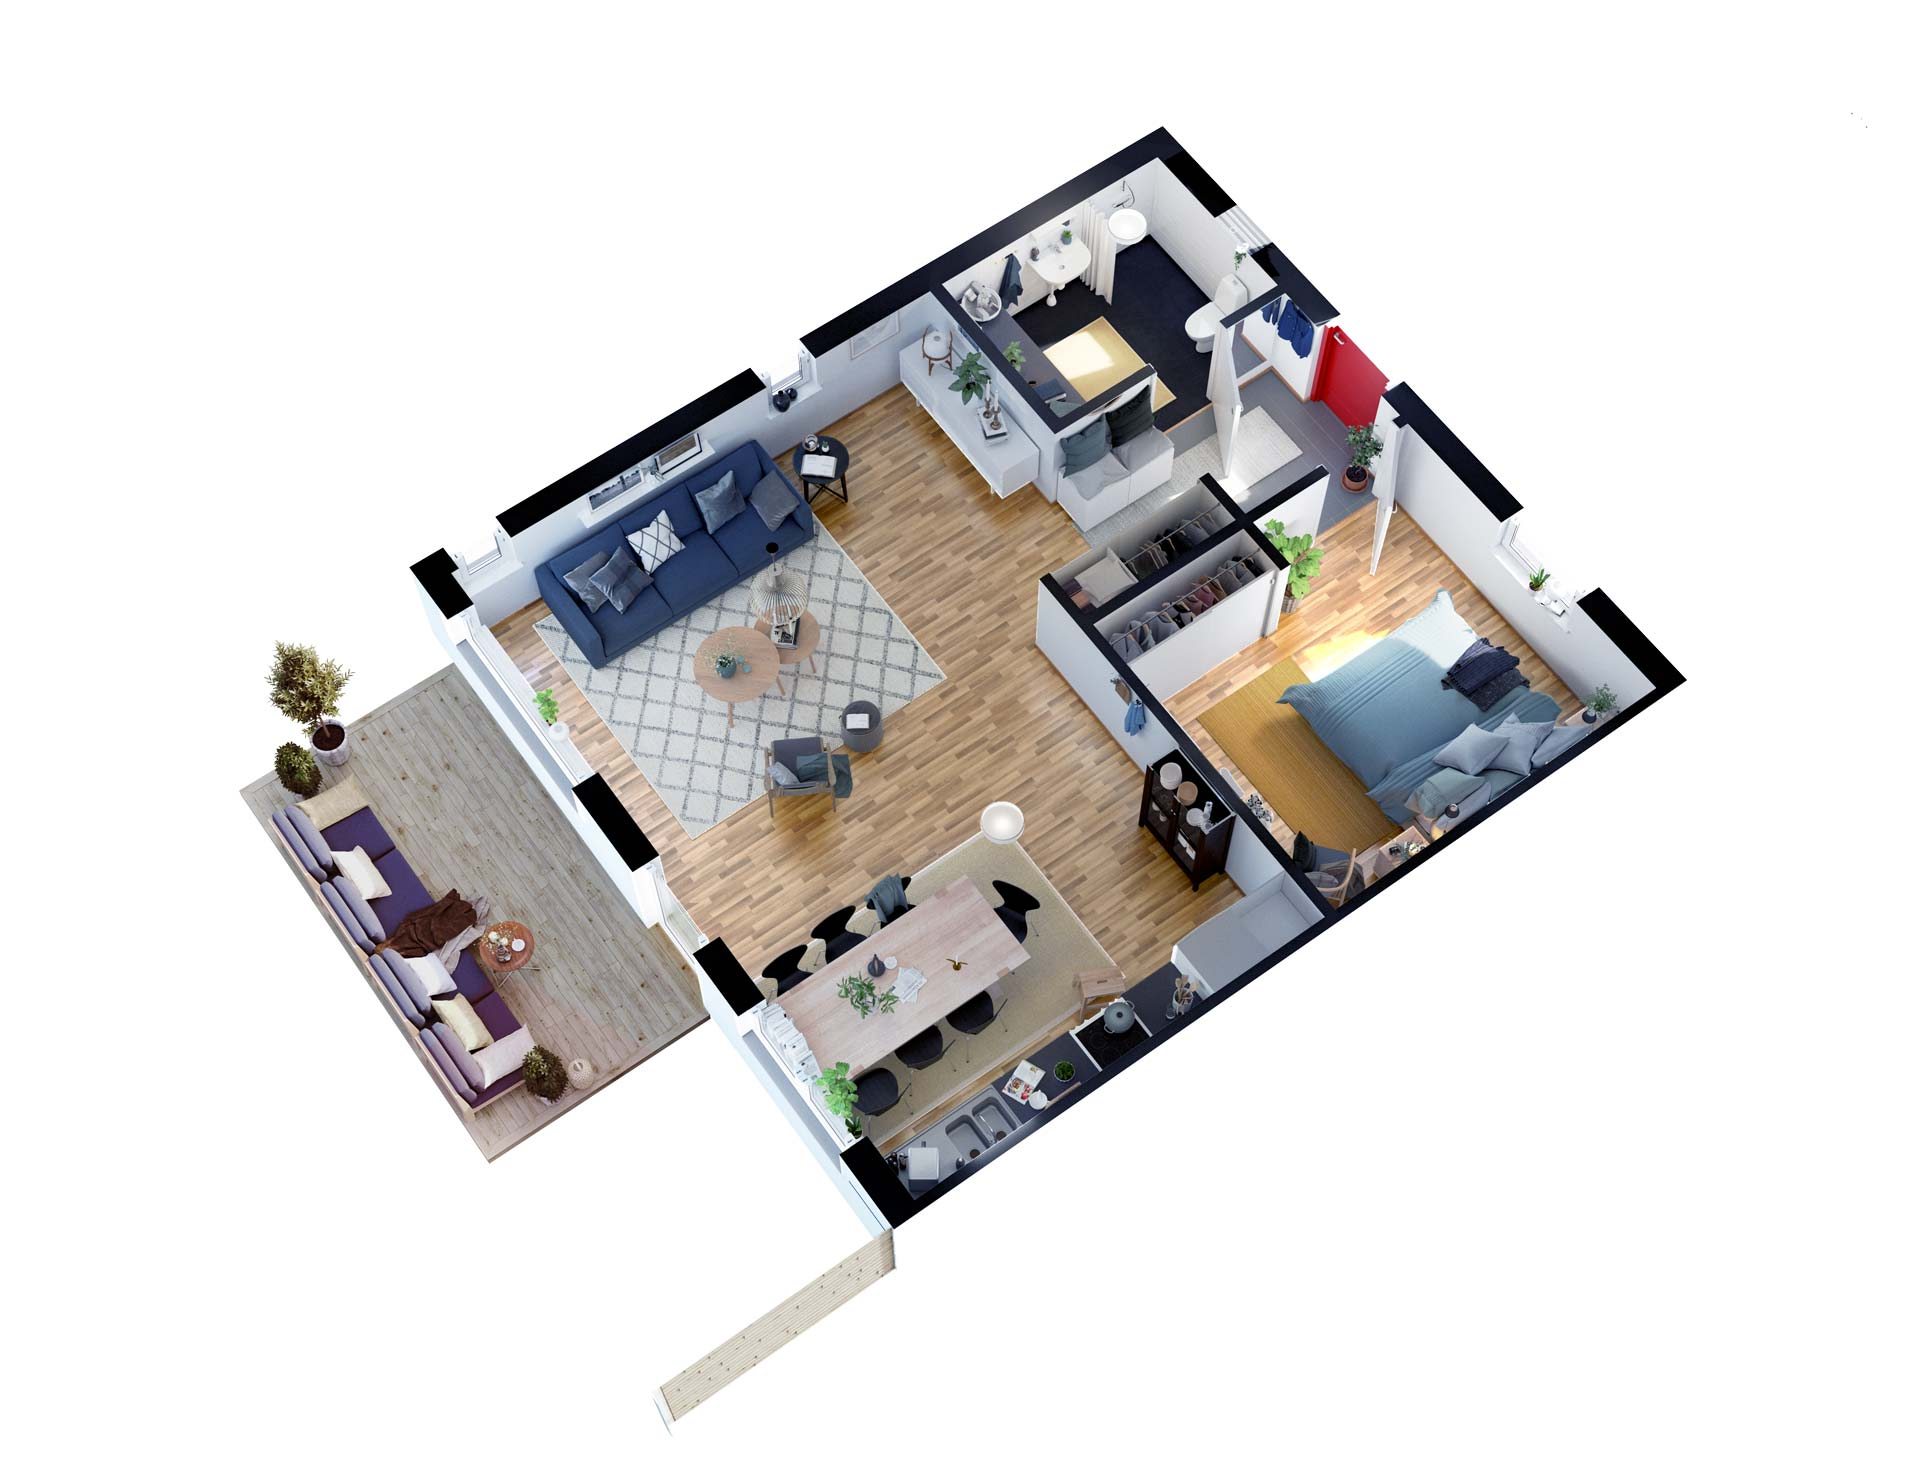 Floor plan of a modern Scandinavian apartment- 3D Viscato